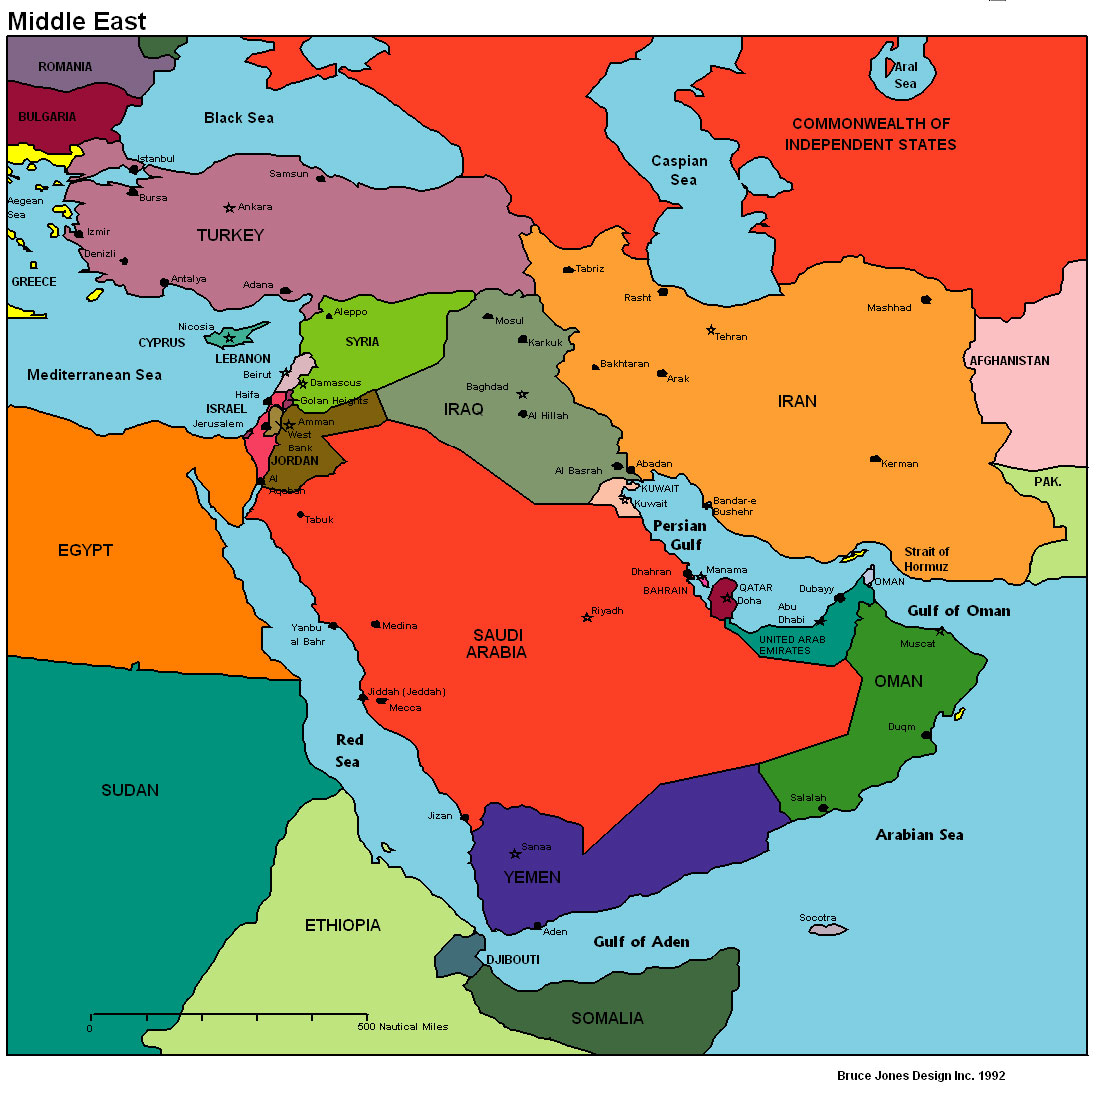 middle-east-political-map - Integration Through Media ....!